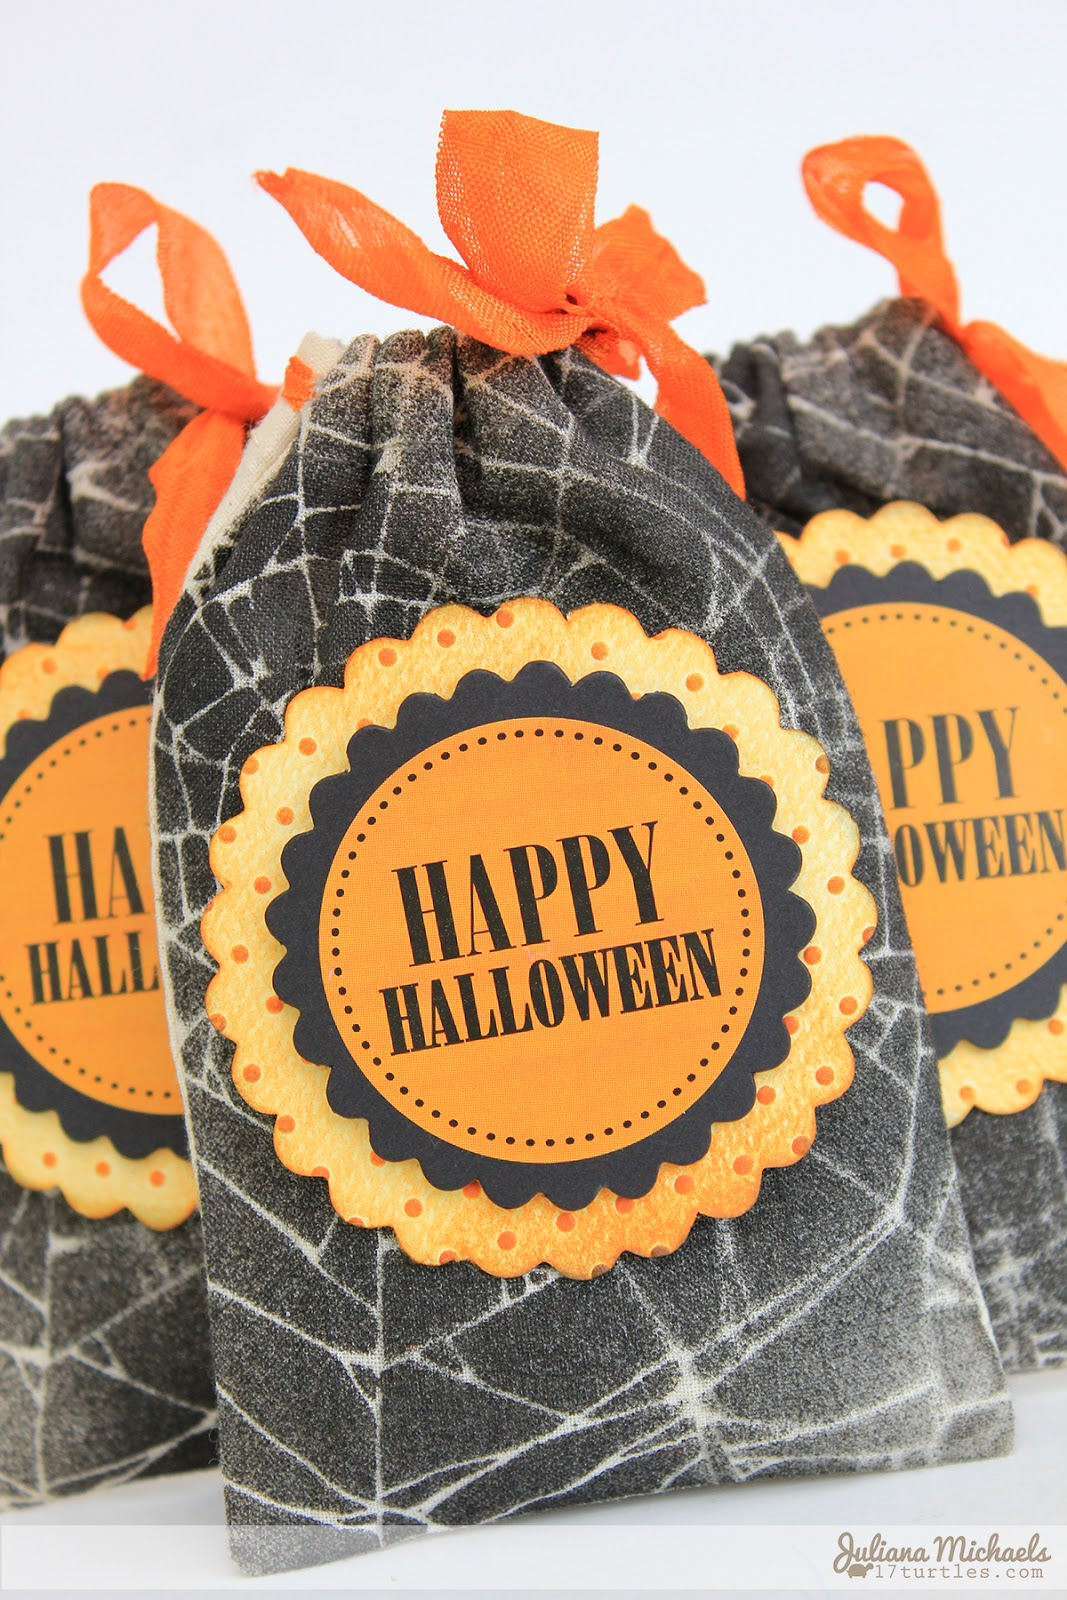 http://1.bp.blogspot.com/-BZD7_mI-cL8/U3oq6g5P7pI/AAAAAAAARDA/x3HulsV3oQY/s1600/Happy-Halloween-Treat-Bags-Juliana-Michaels-SRM-Stickers-03.jpg